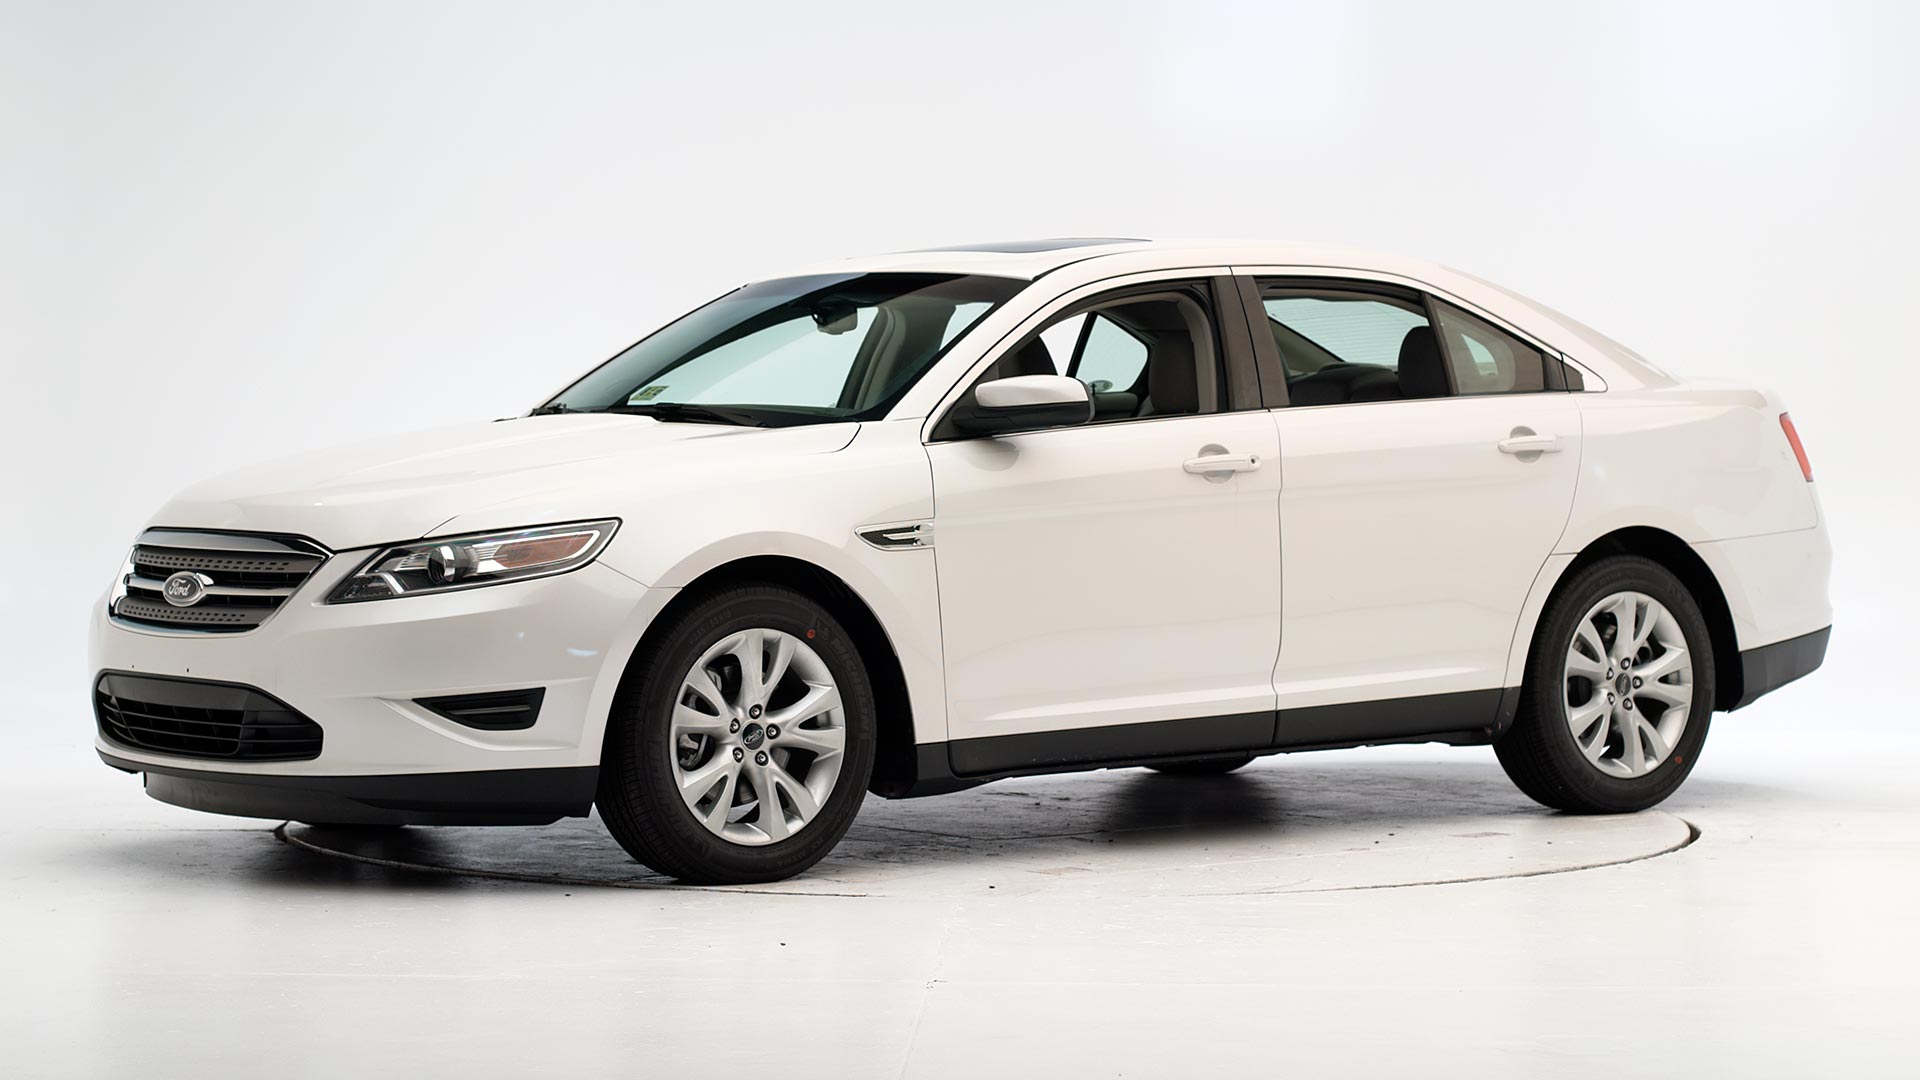 2012 Ford Taurus 4-door sedan